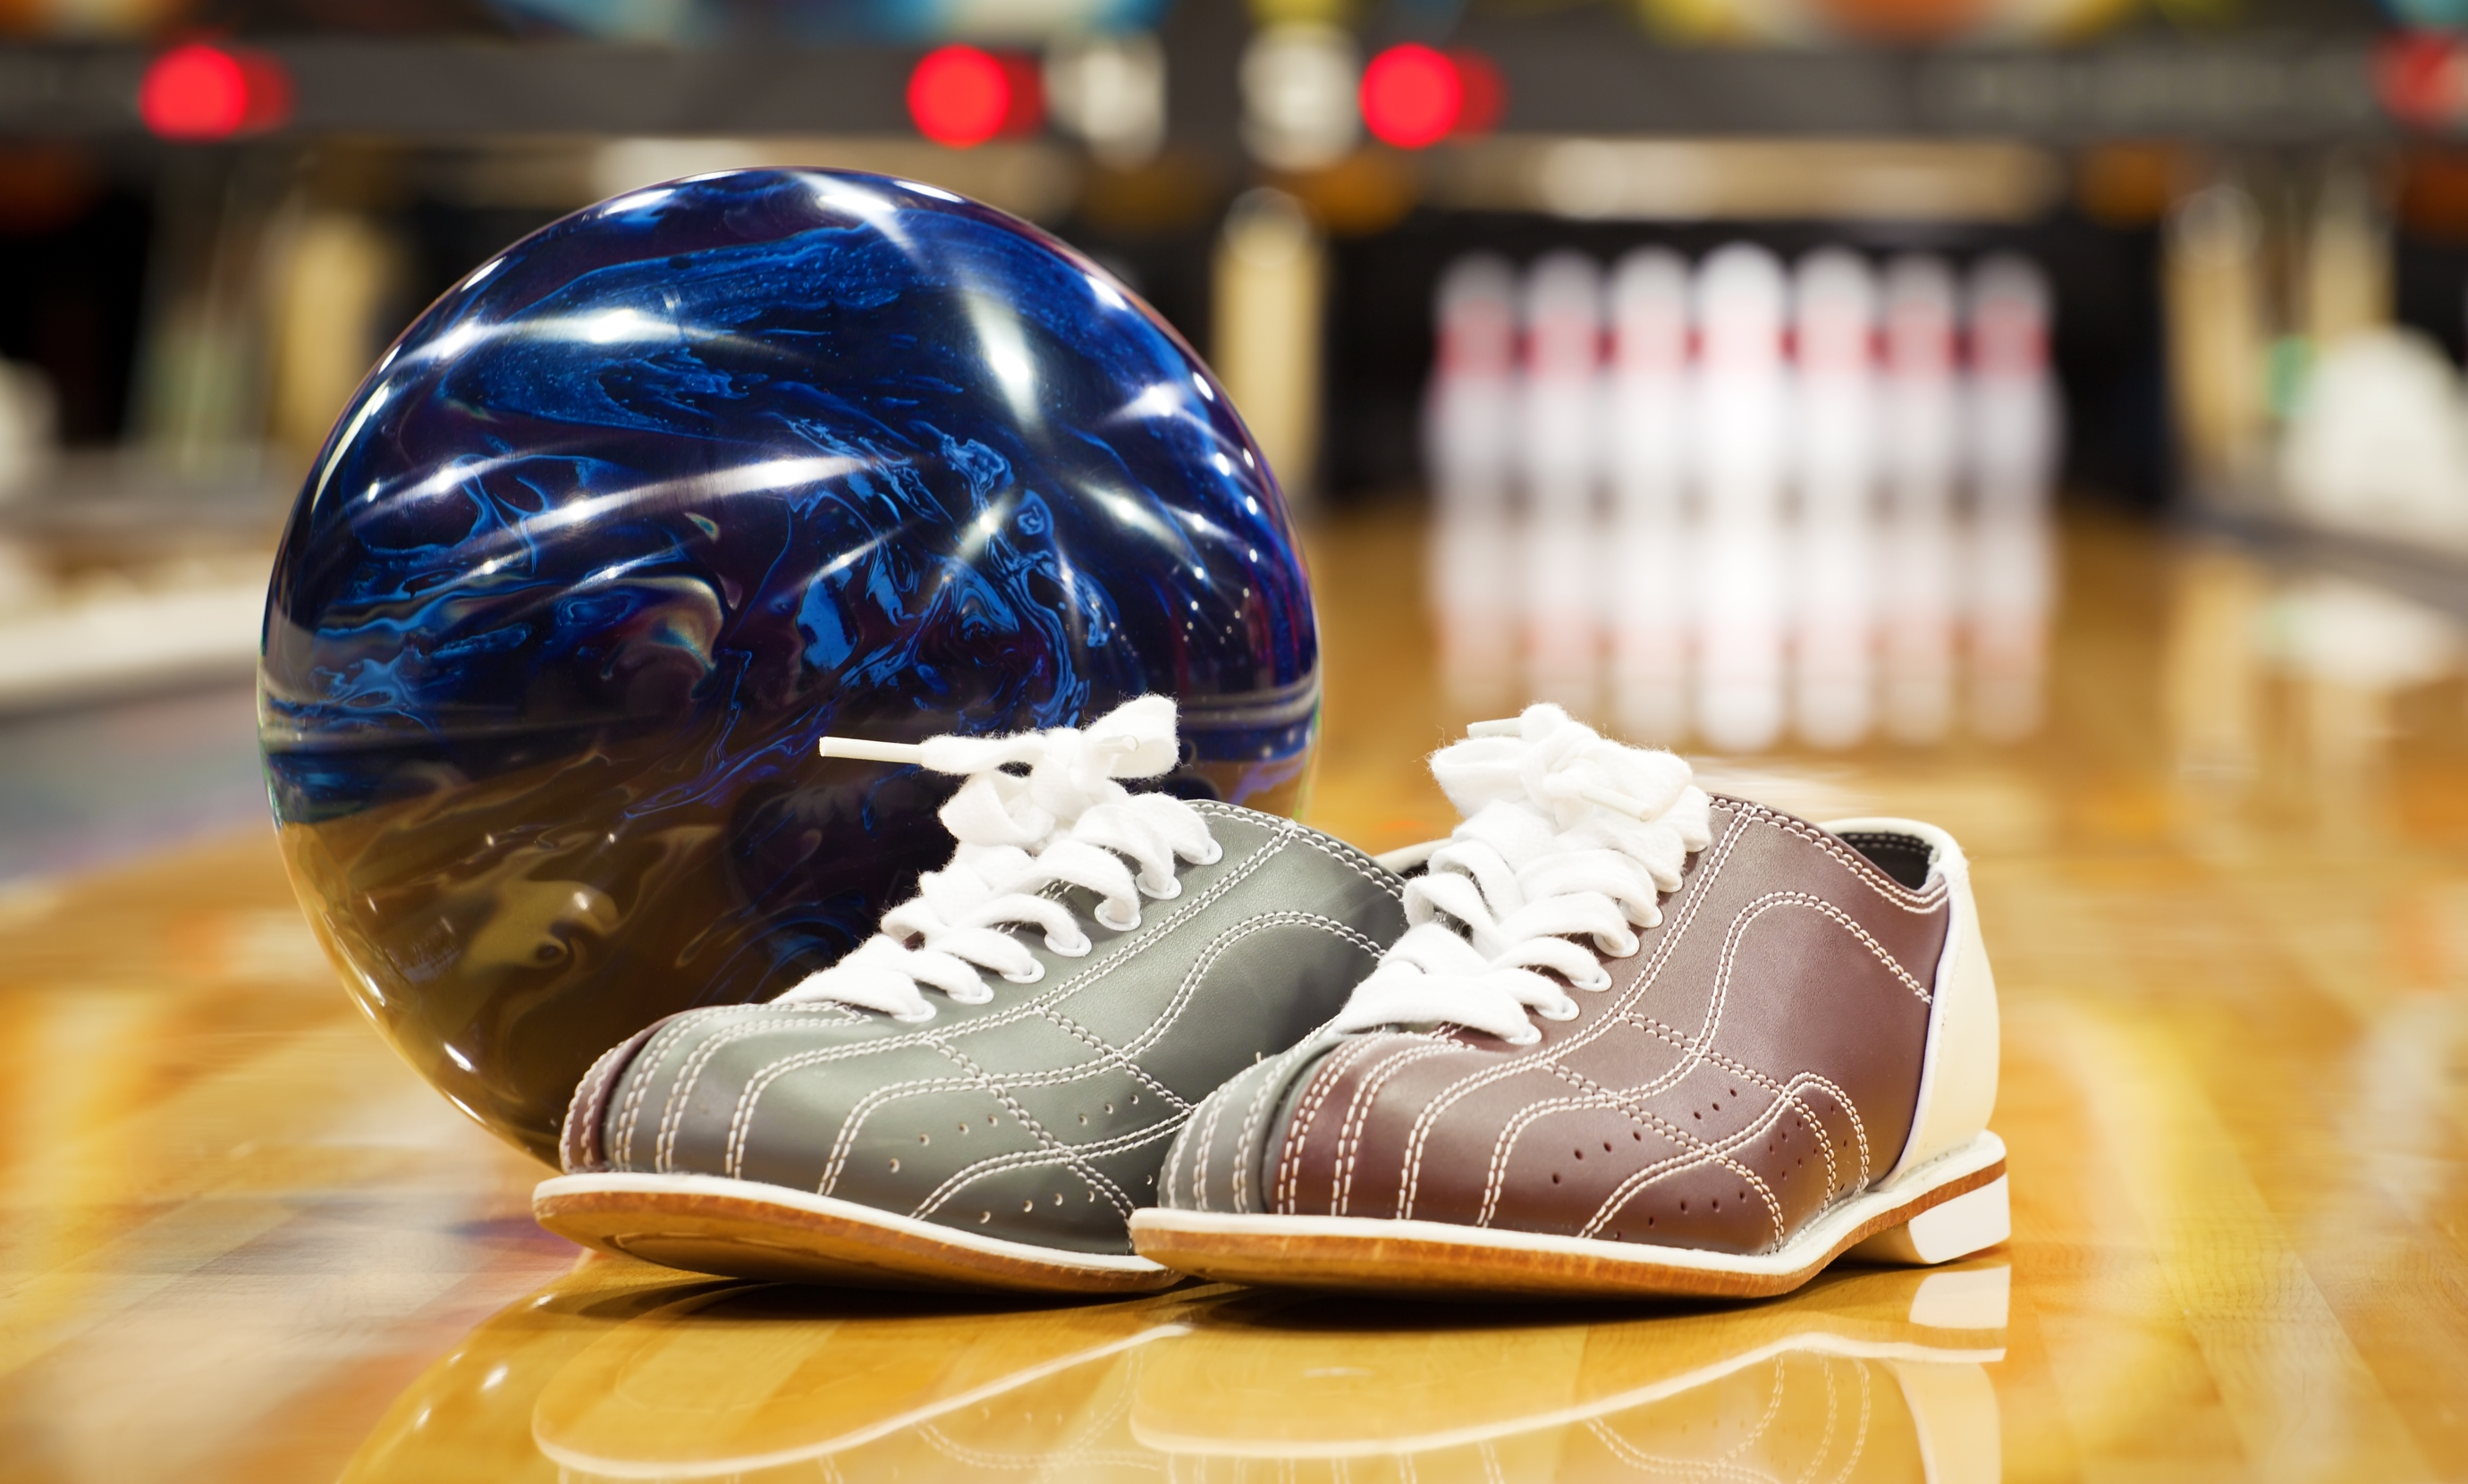 national bowling academy store